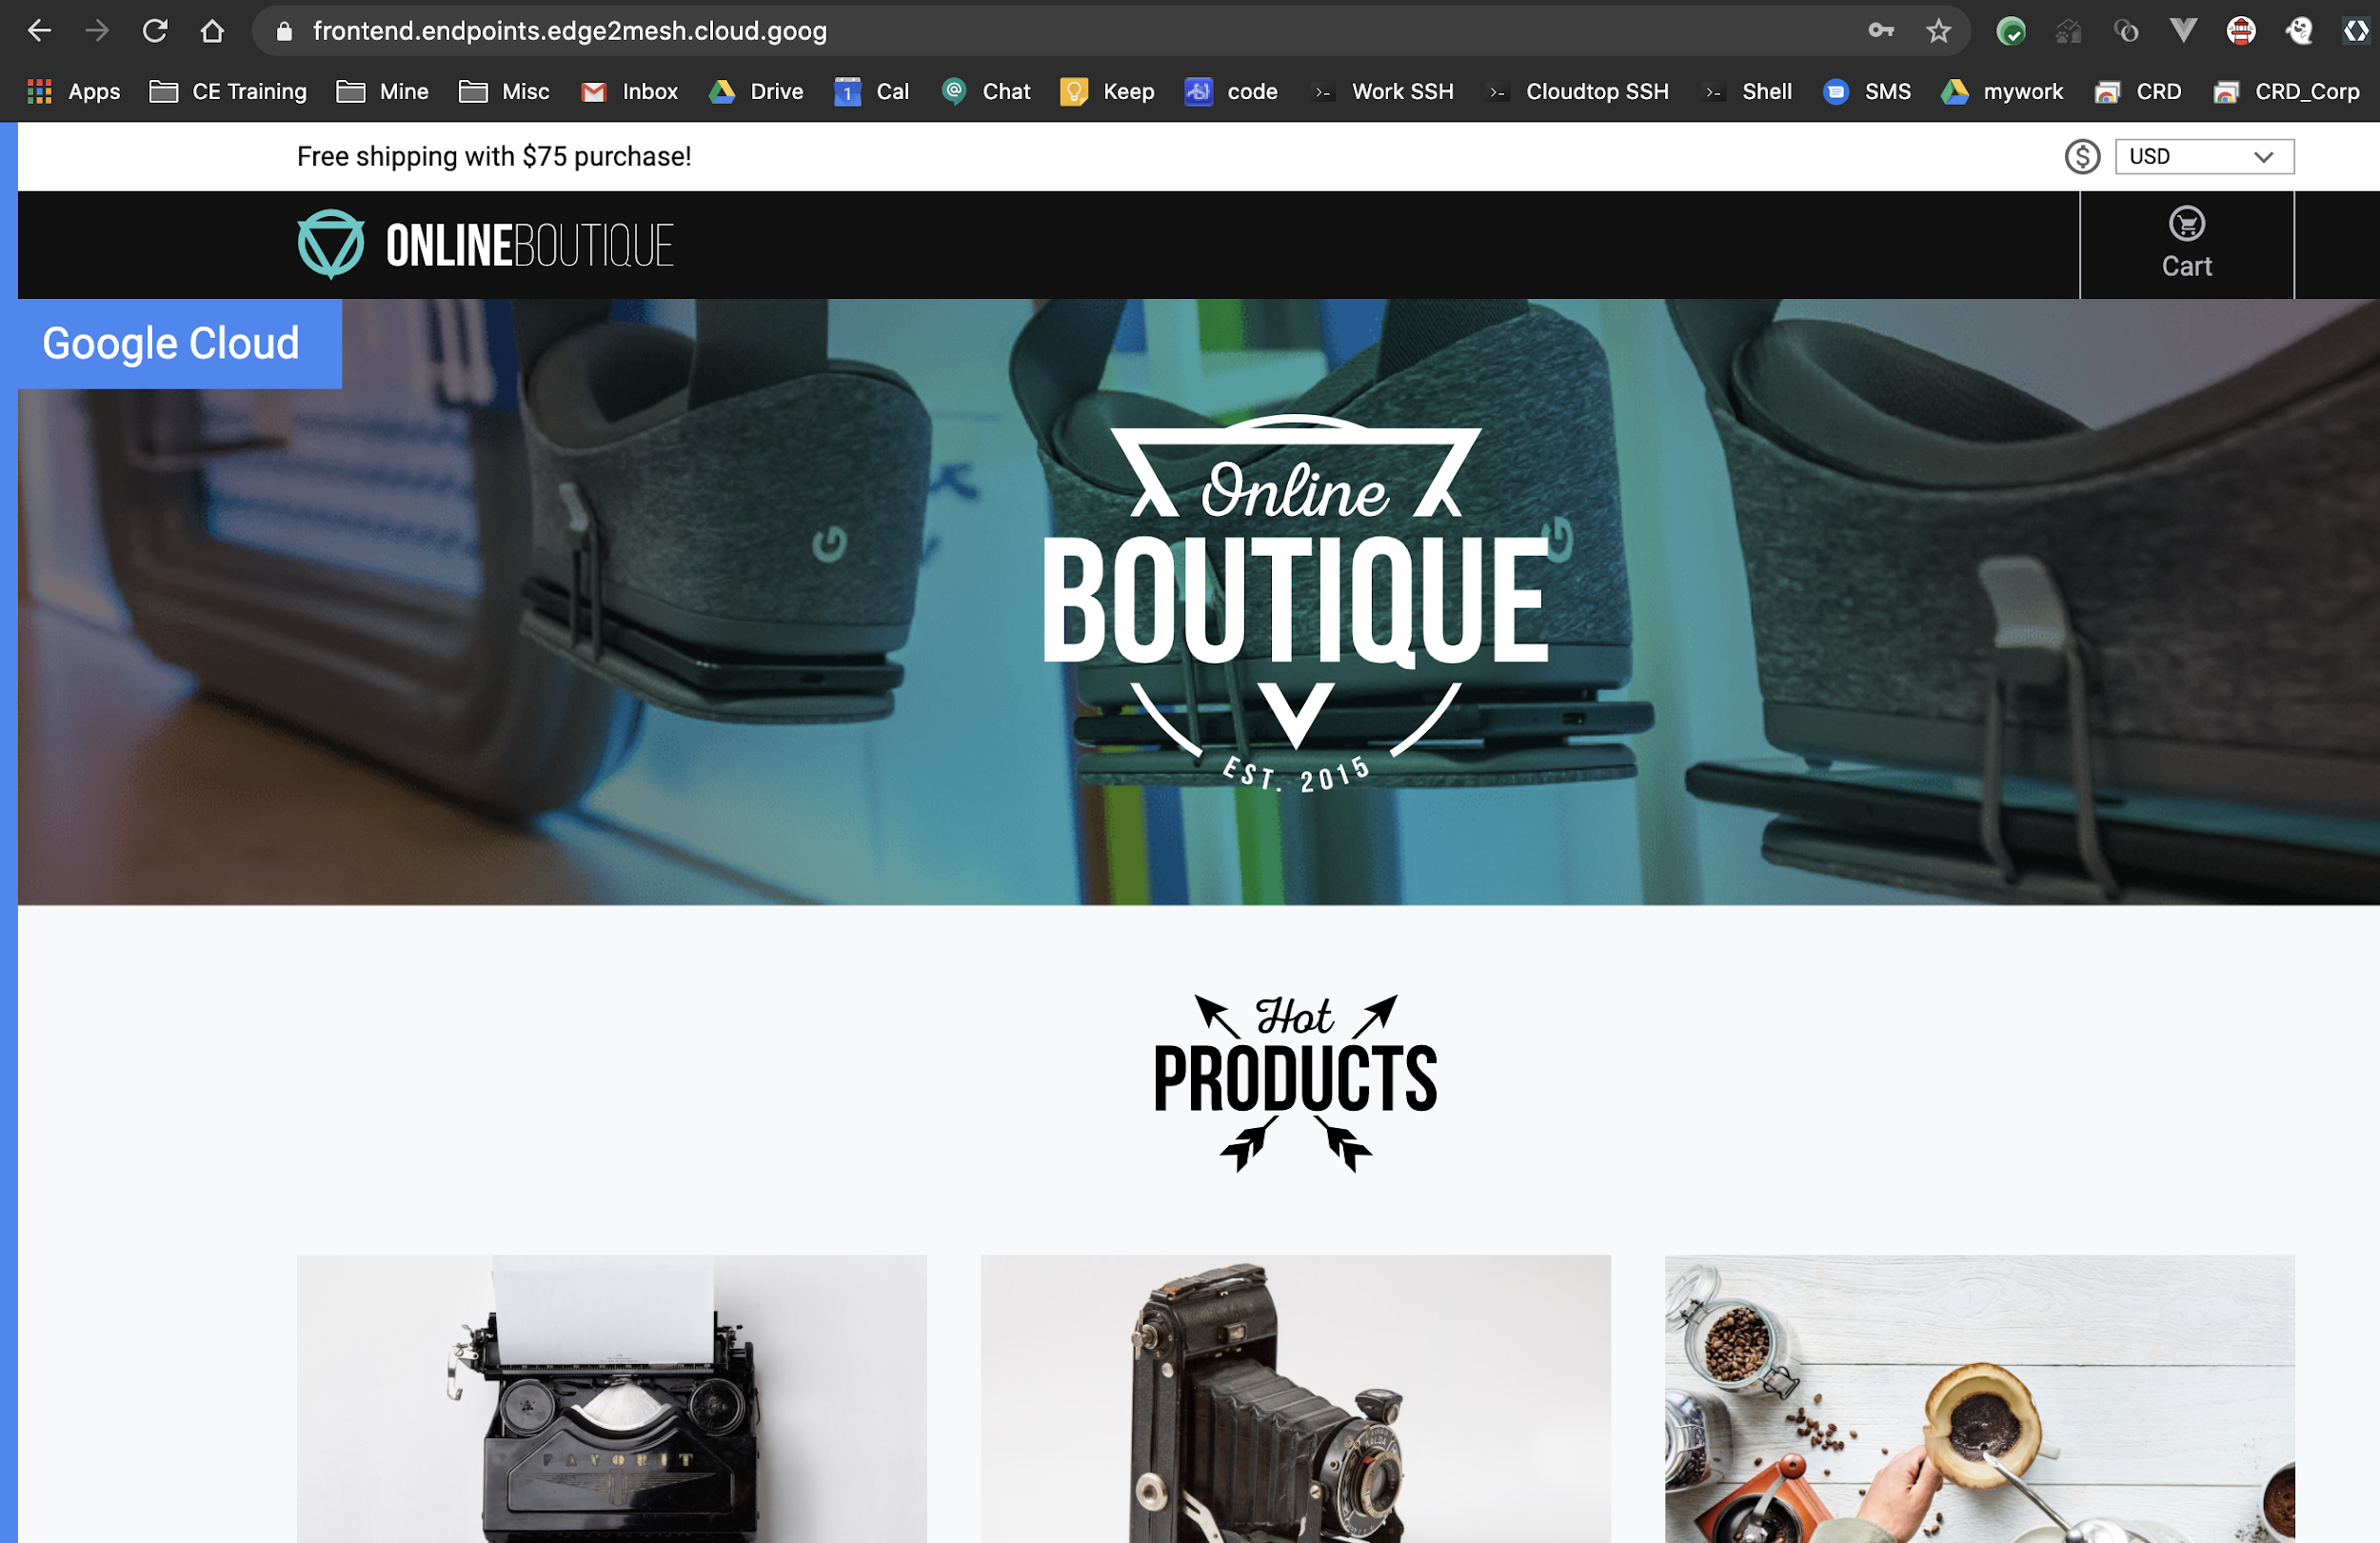 Products shown on Online Boutique home page.